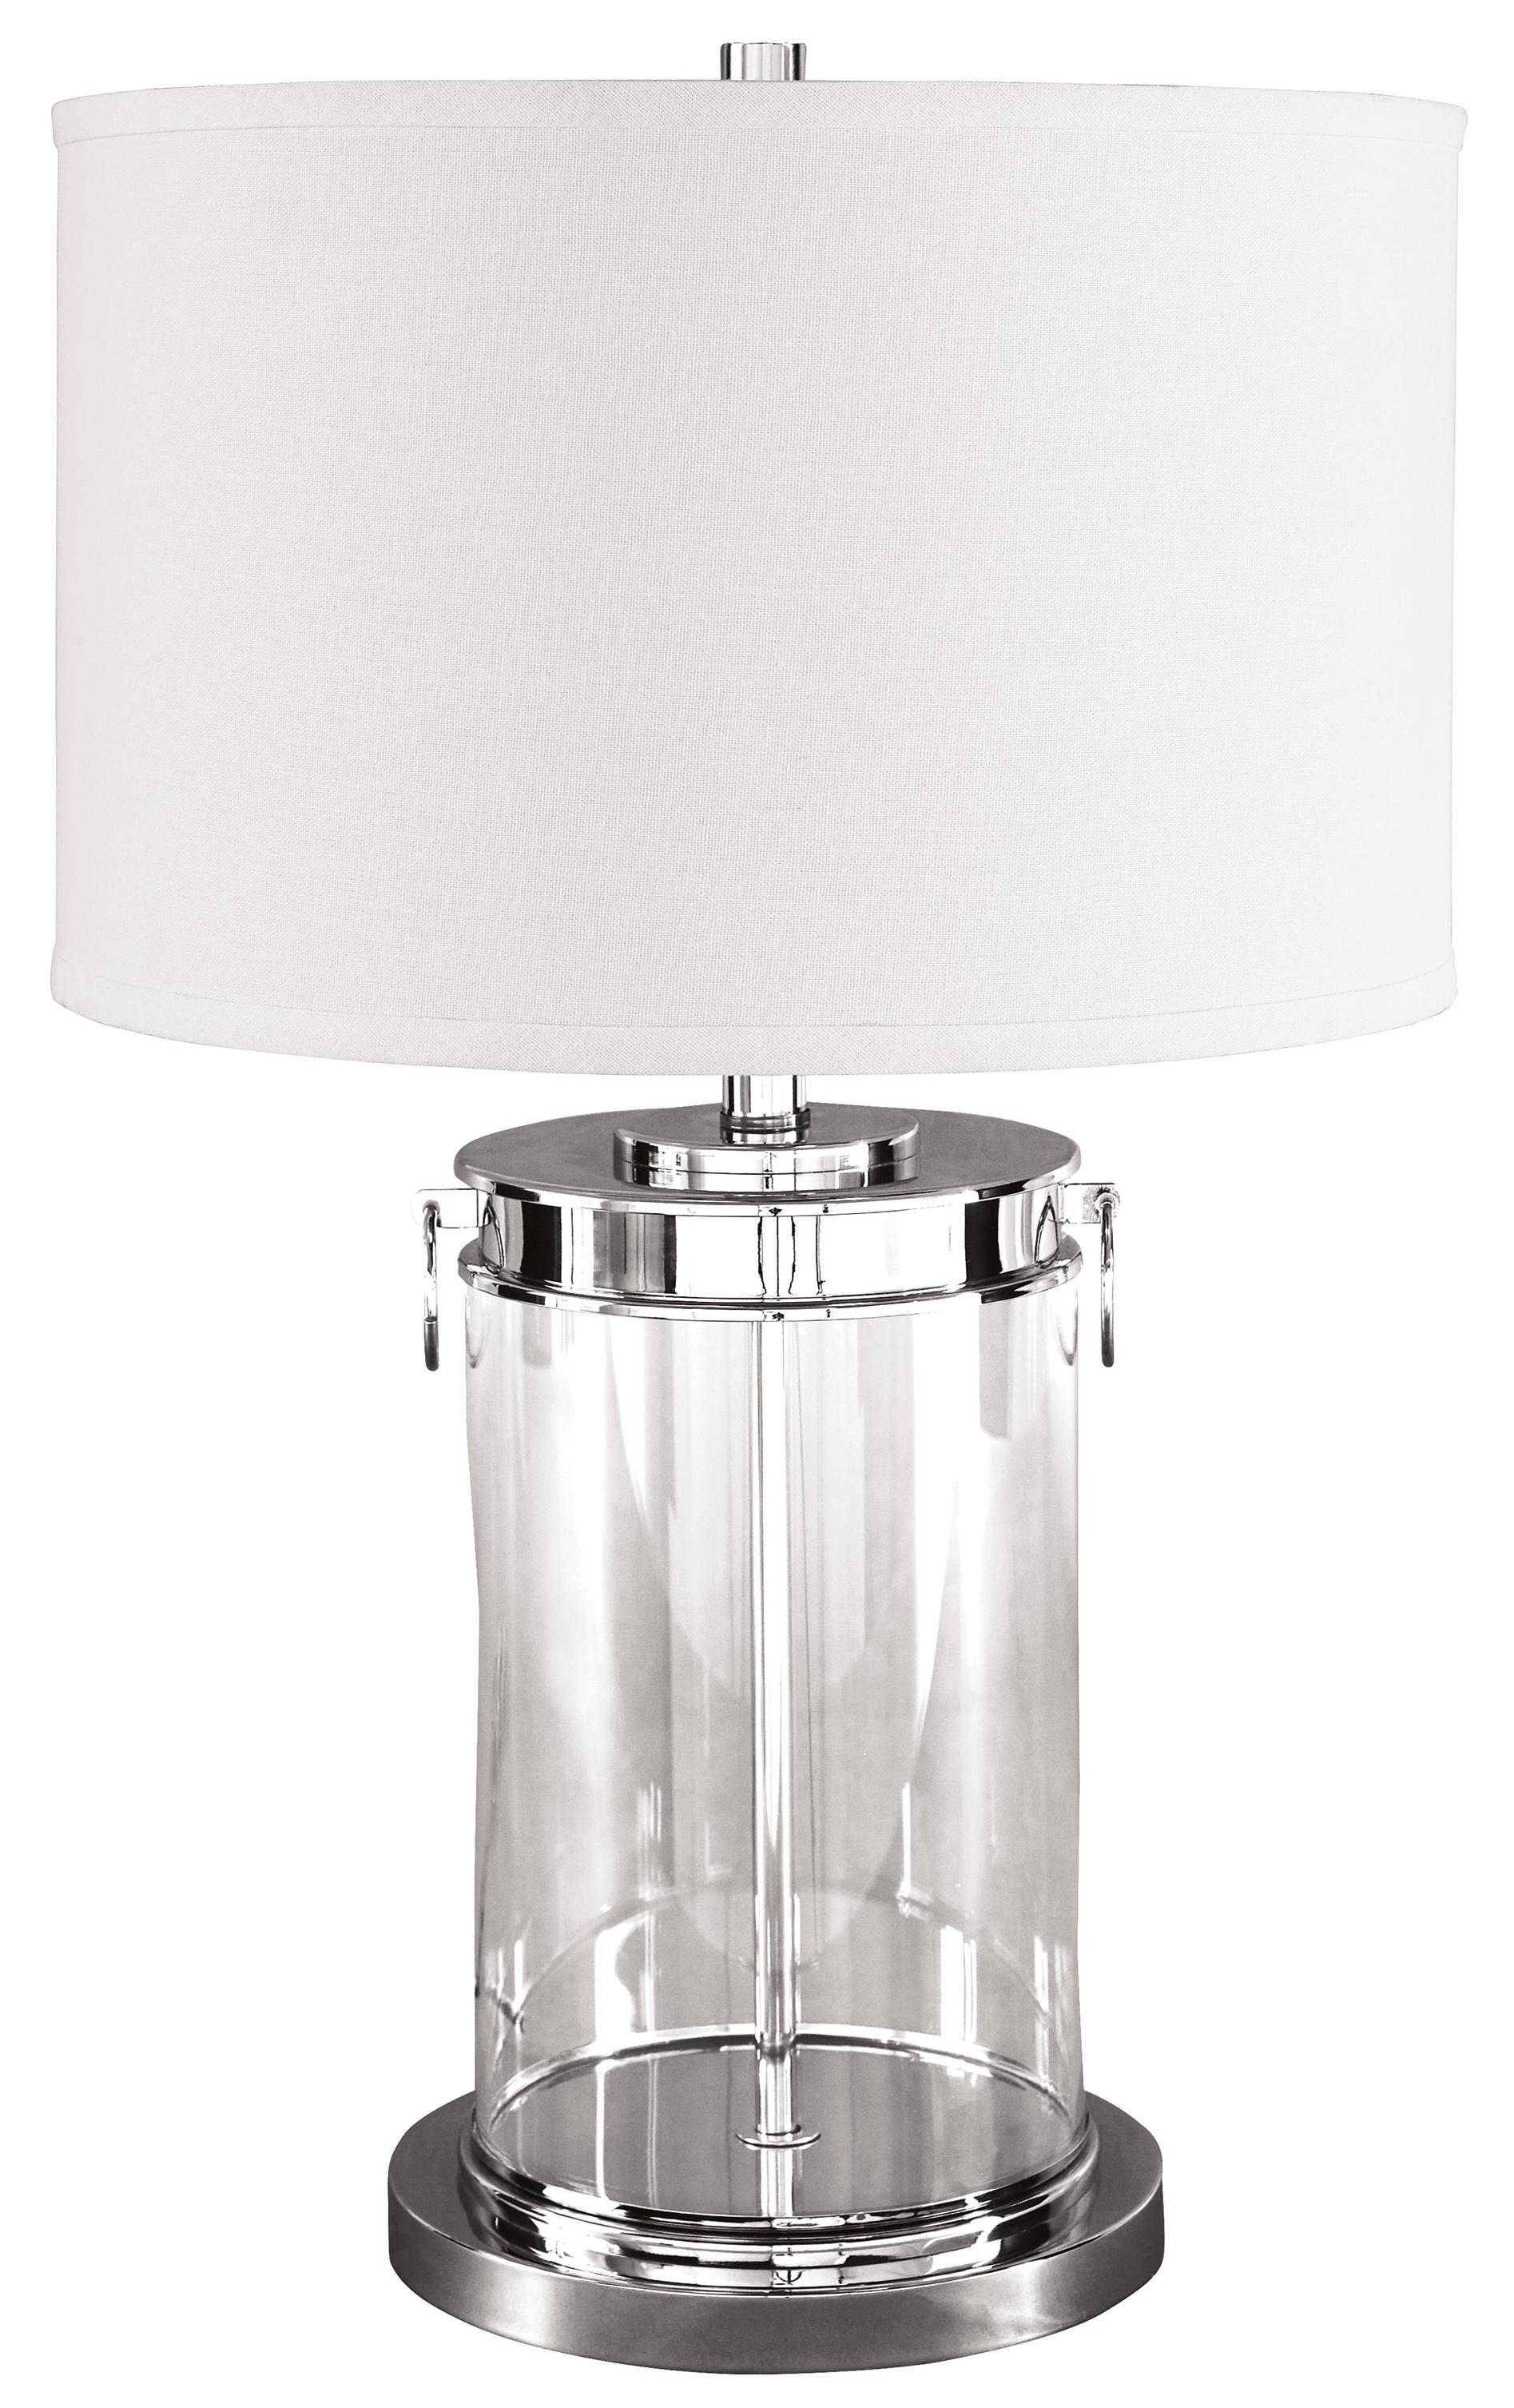 Signature Design by Ashley Lamps - Contemporary Tailynn Glass Table Lamp - Item Number: L430244